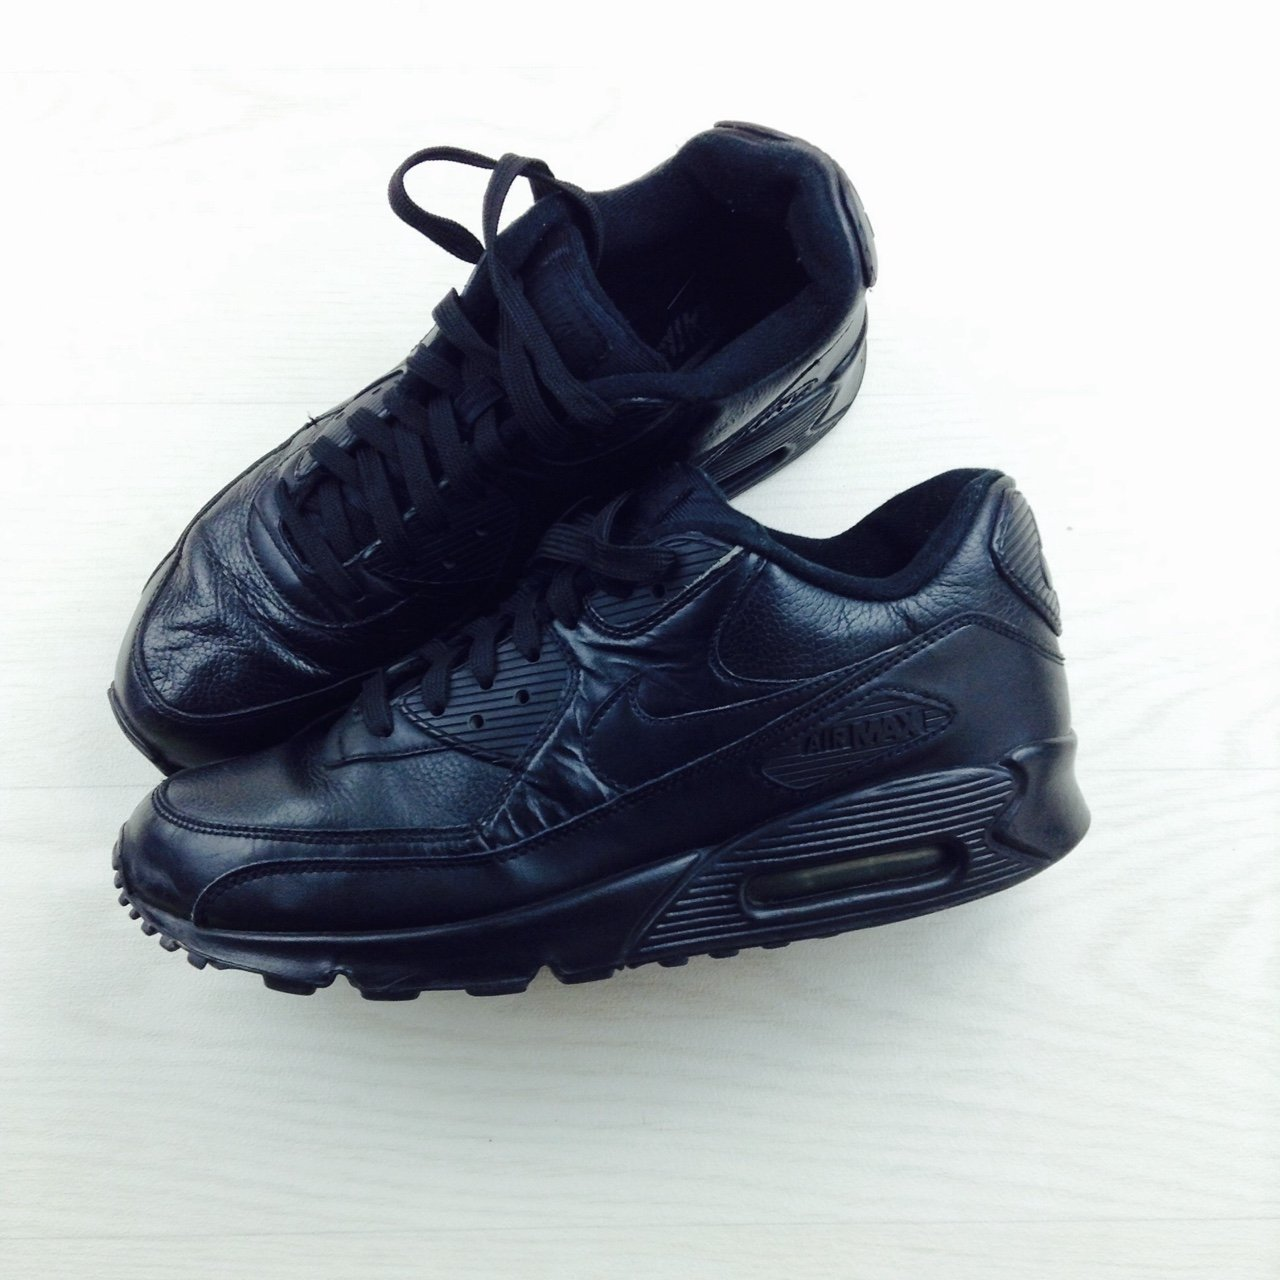 9911f8fa99e2f Men s black leather air max 90 in good condition authentic - Depop